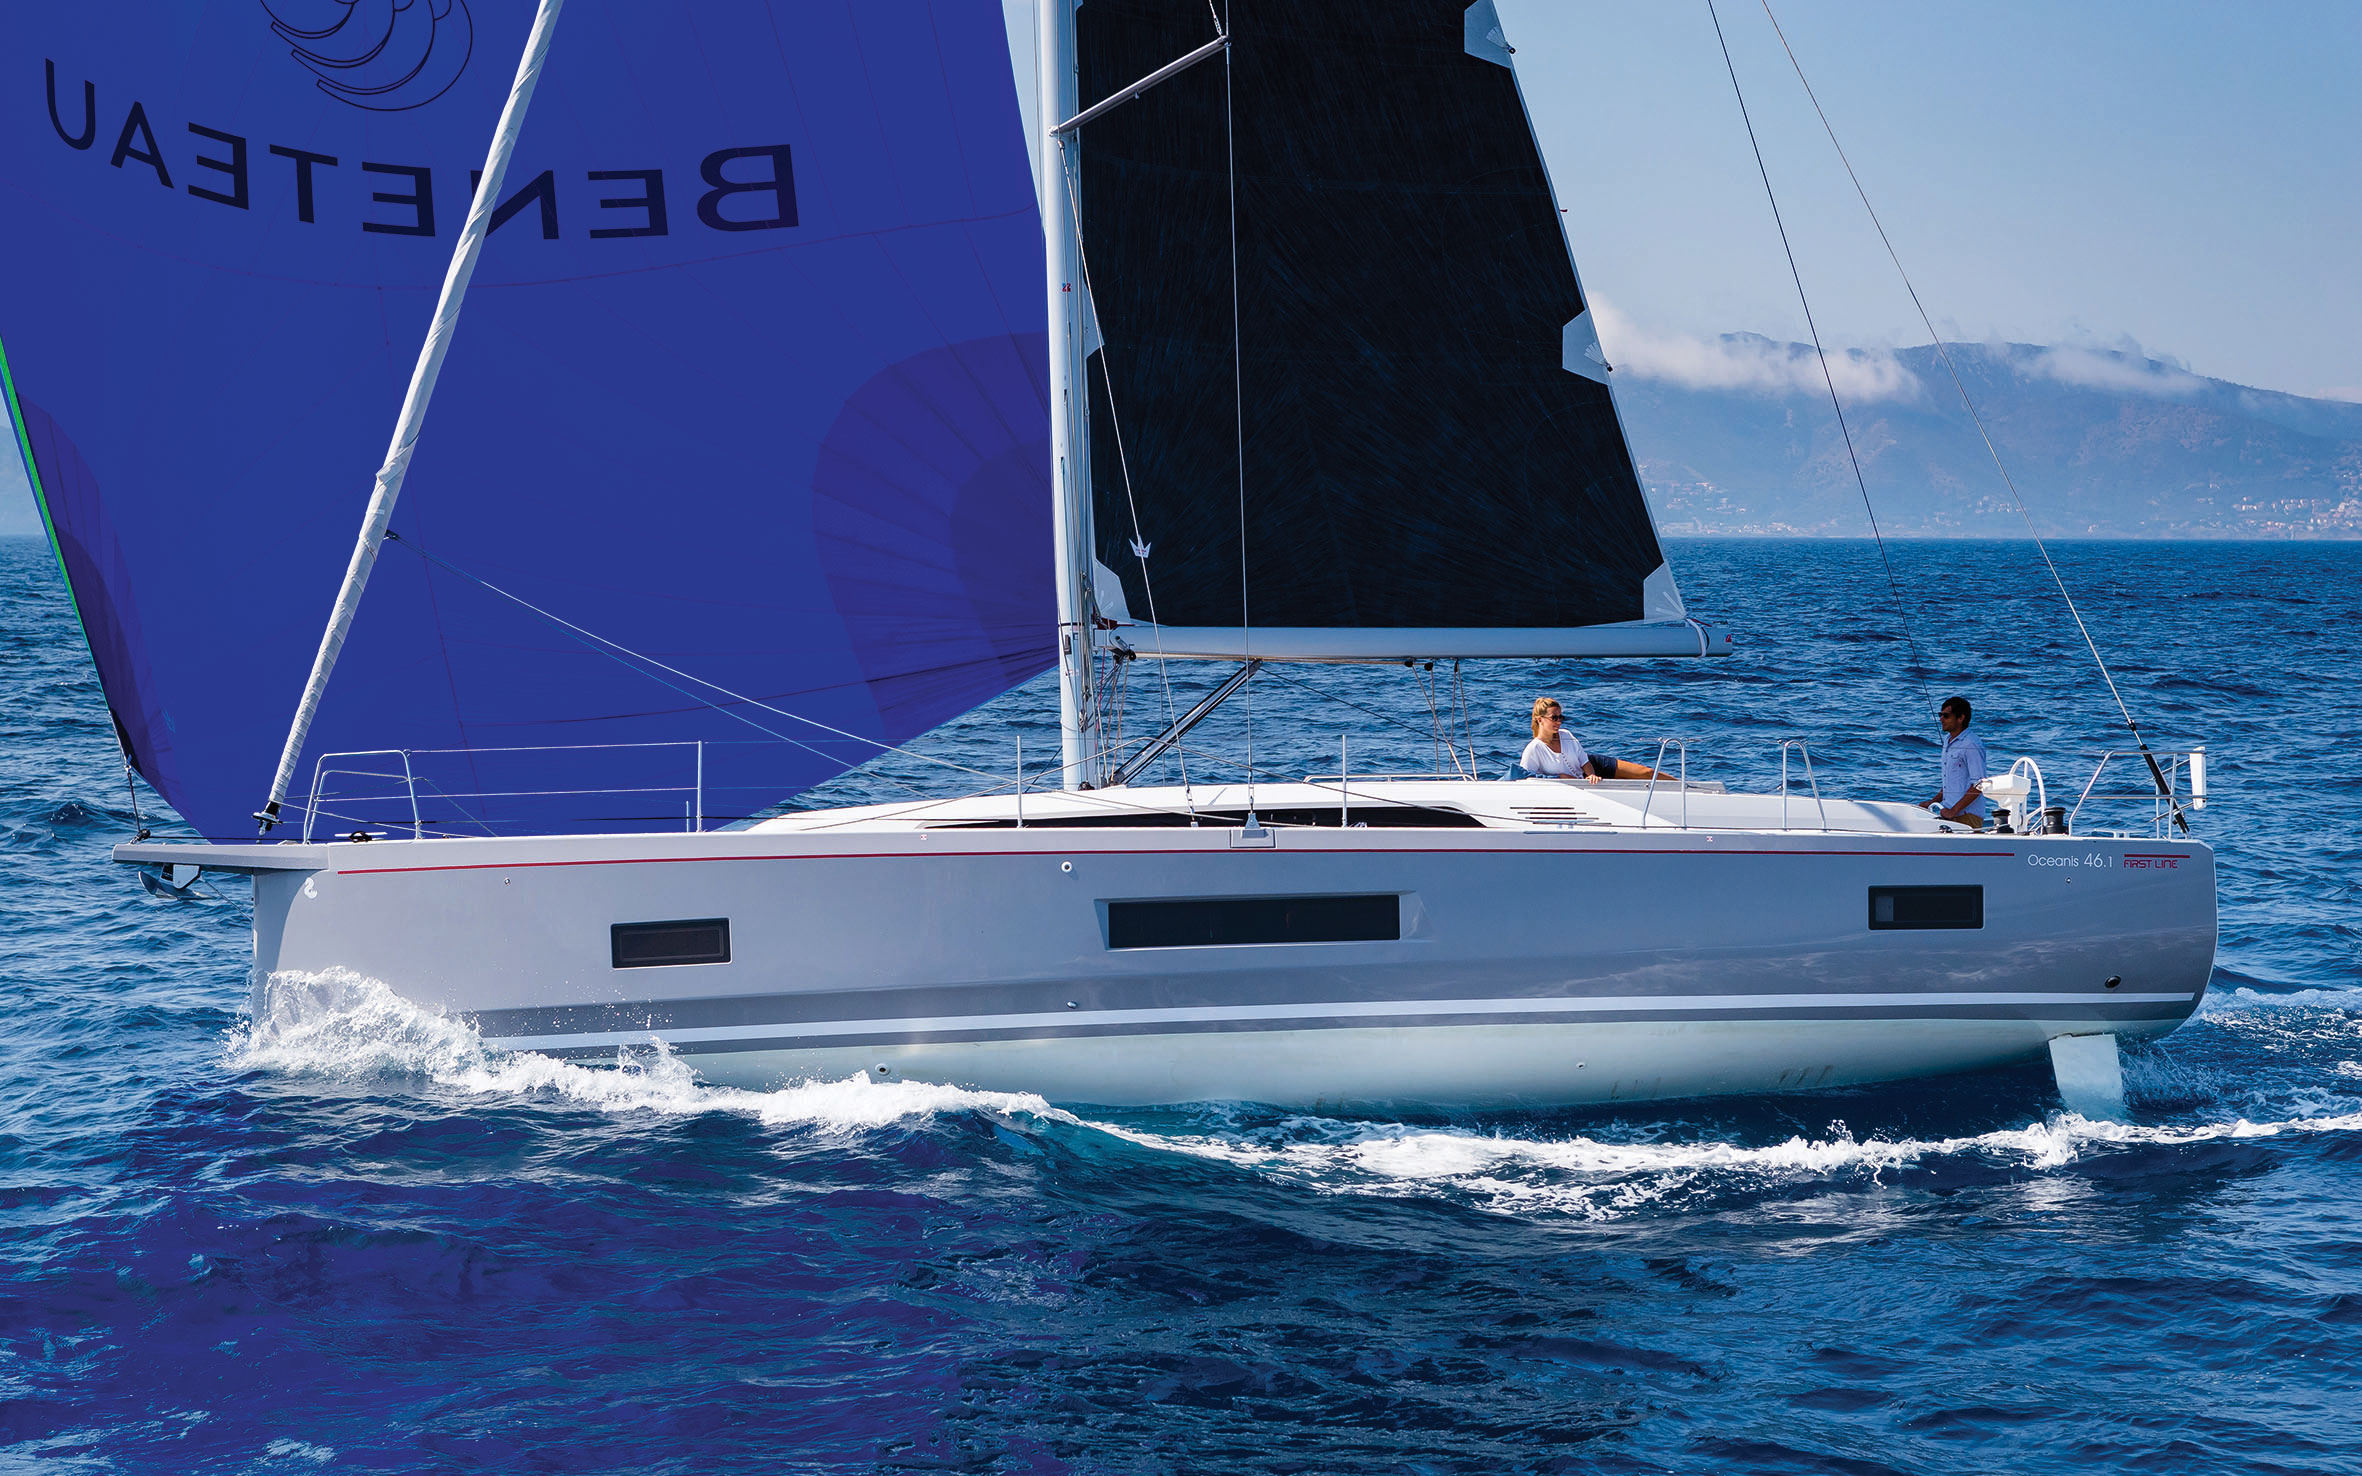 Beneteau Oceanis 46 1 boat test – the next big thing for the